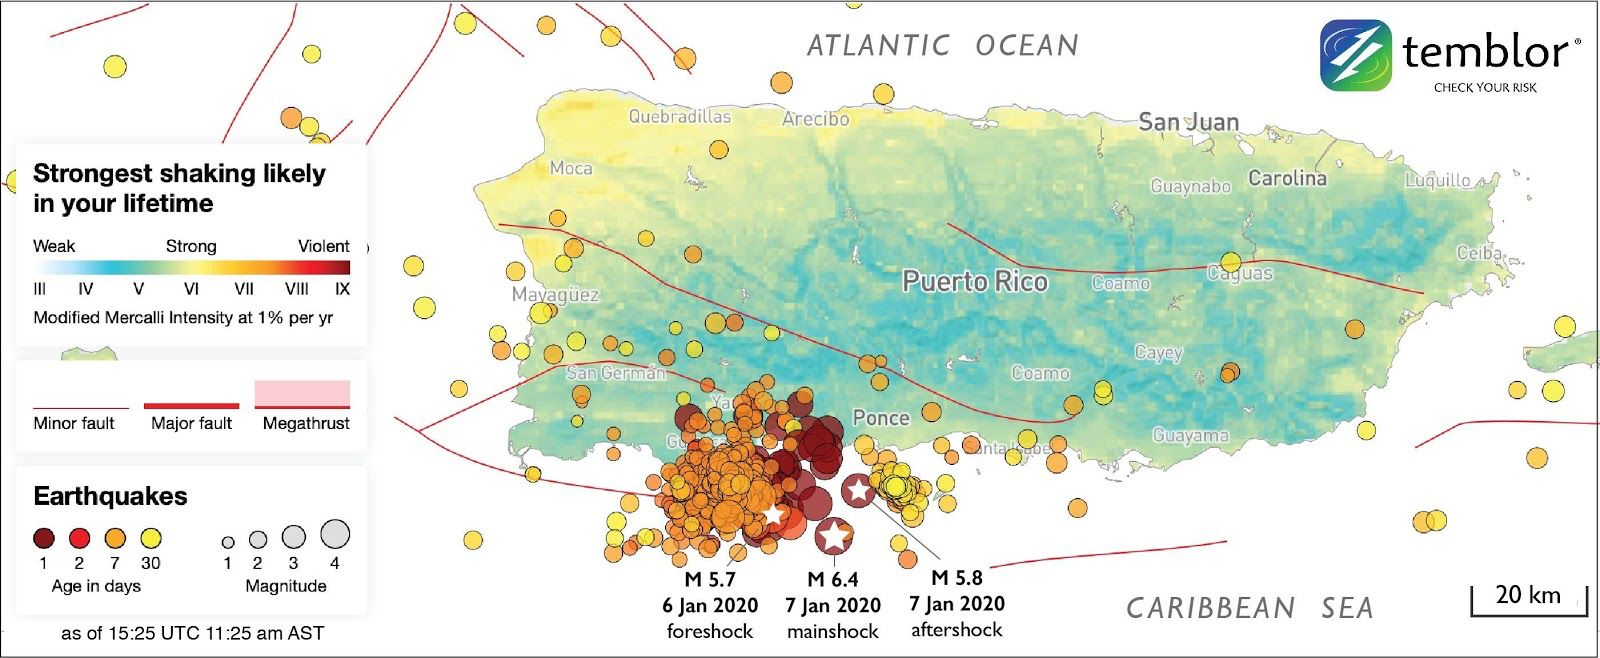 Pin By Dionisio Reyes On Isla In 2020 Puerto Puerto Rico Seismic